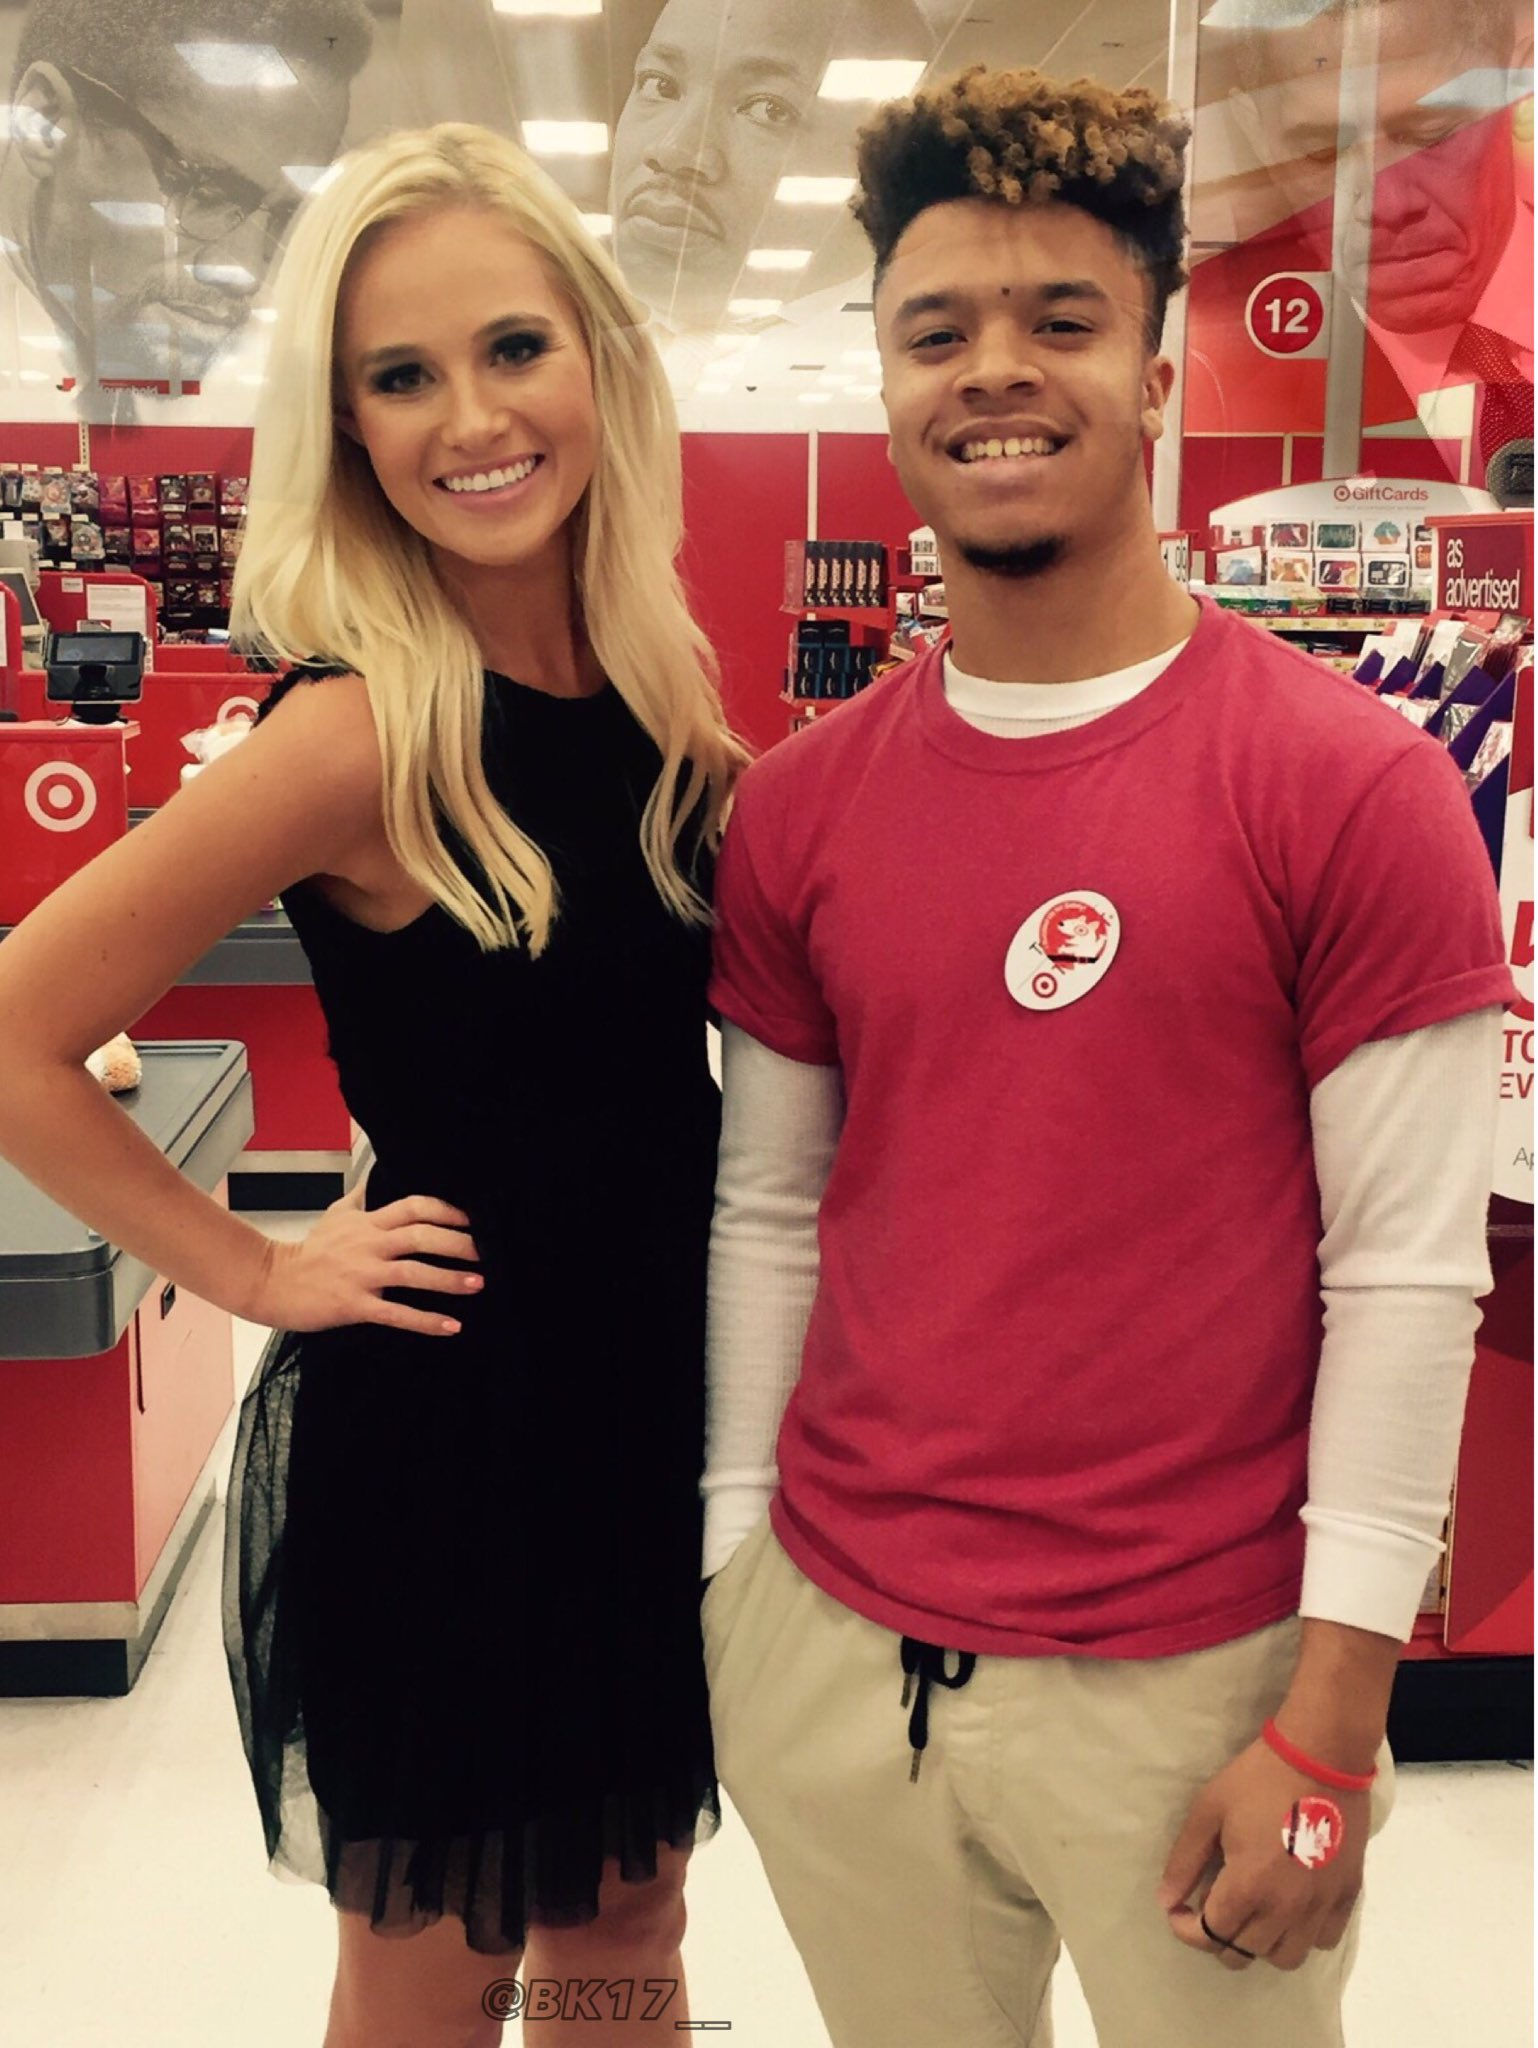 What's that in the background??? RT @Uhh_Desmond: So I met @TomiLahren at work today. How was your Tuesday? https://t.co/3MOsps31R3